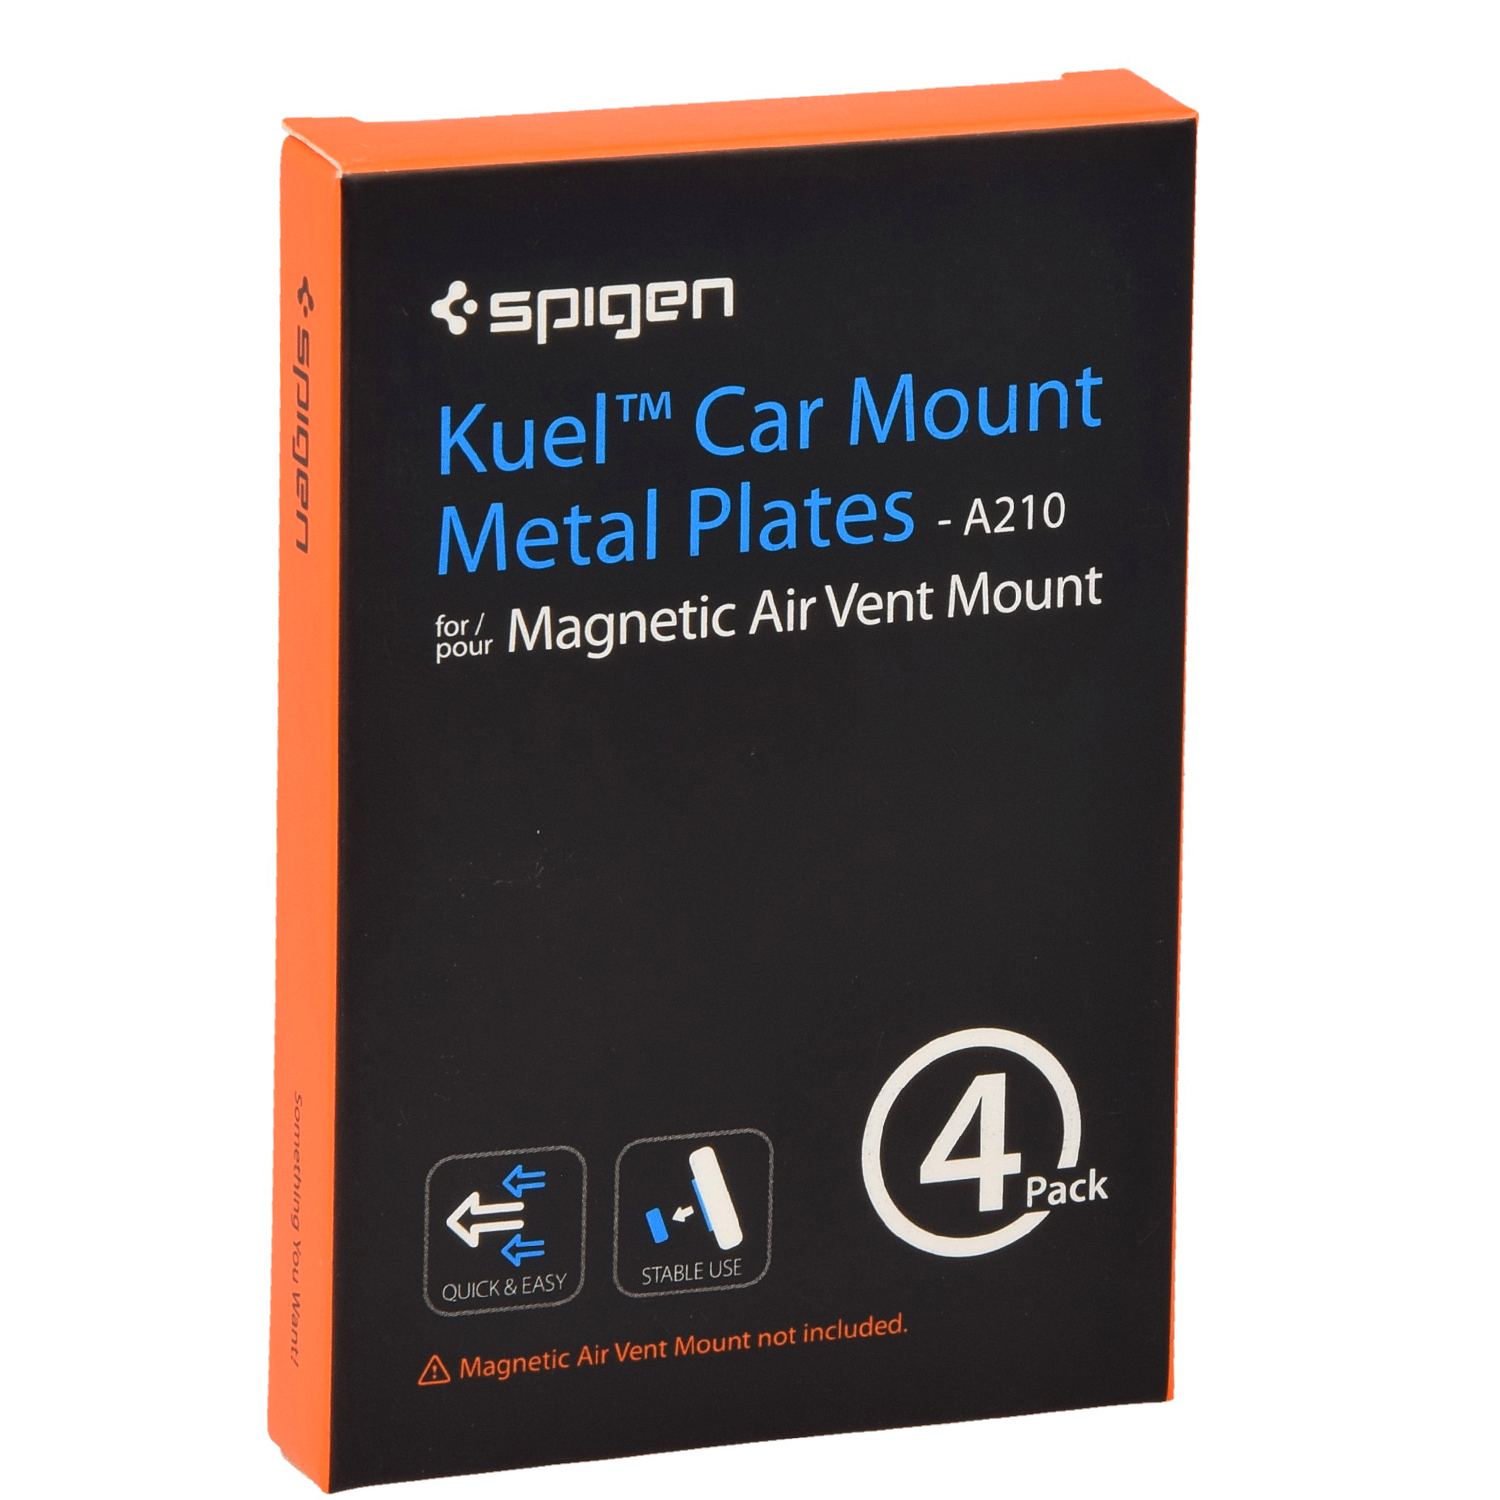 Spigen Kuel Car Mount Metal Plates